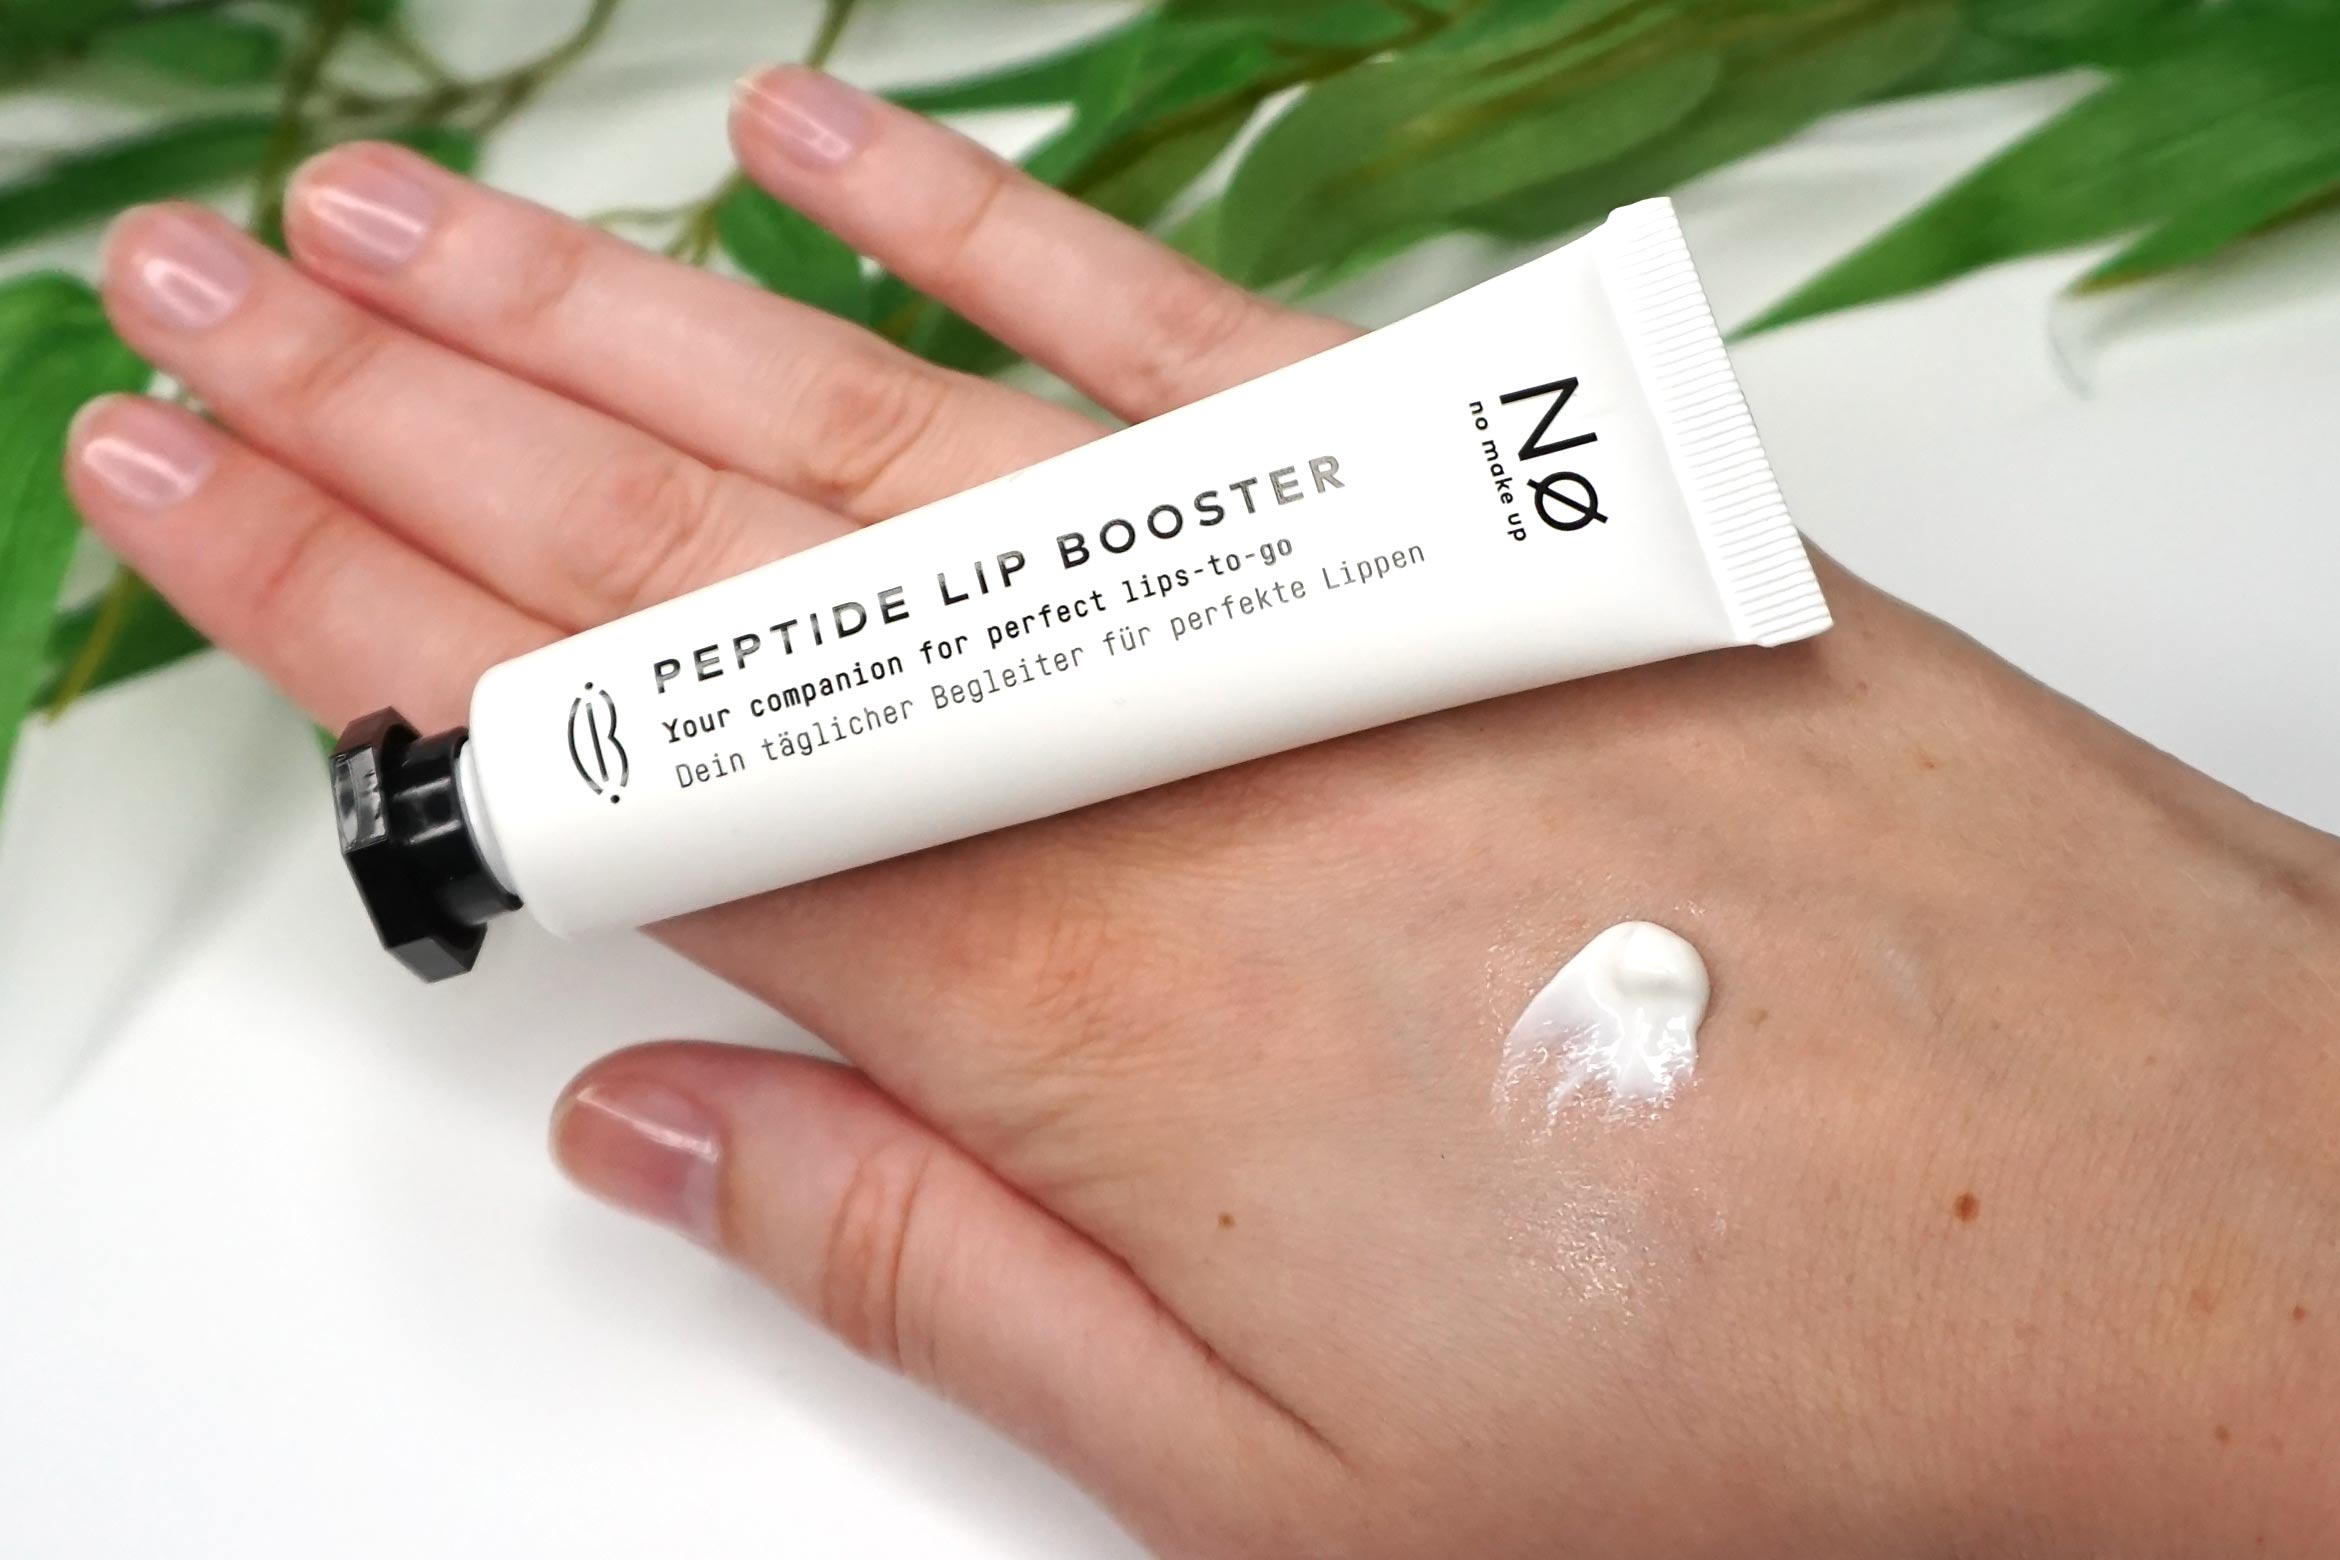 no-make-up-peptide-lip-booster-review-2